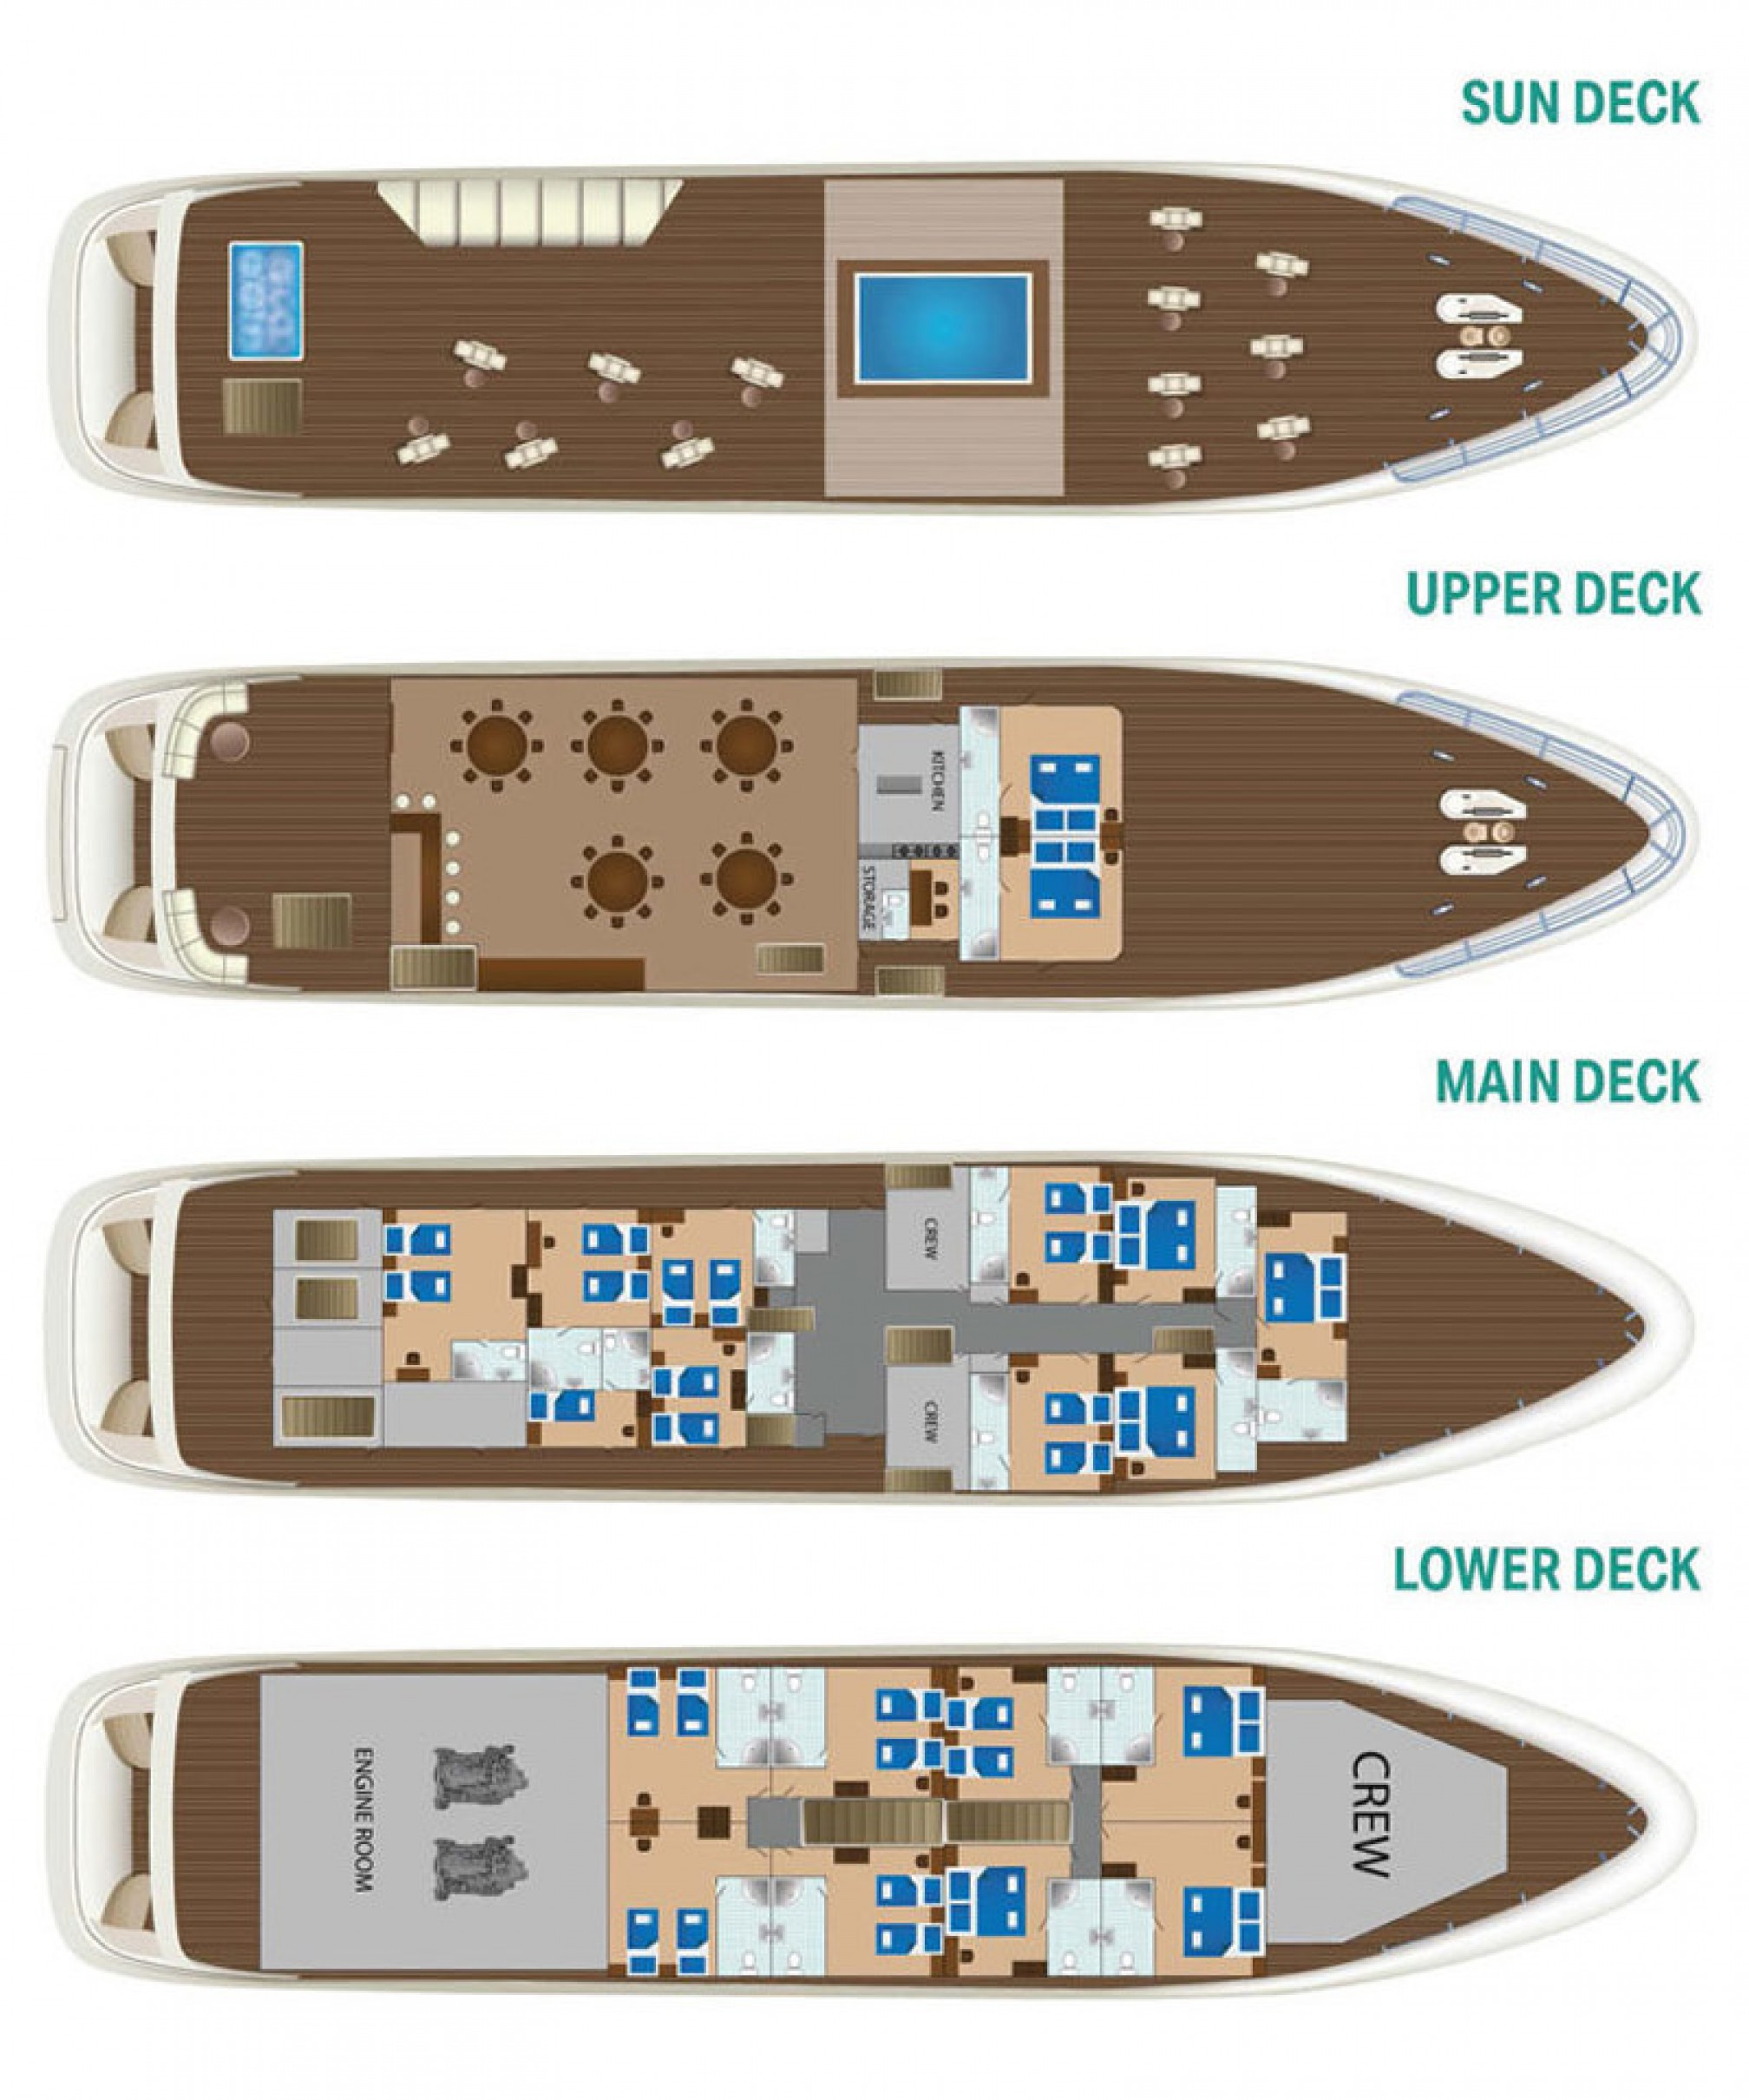 Rental yacht New Star 39 pax layout